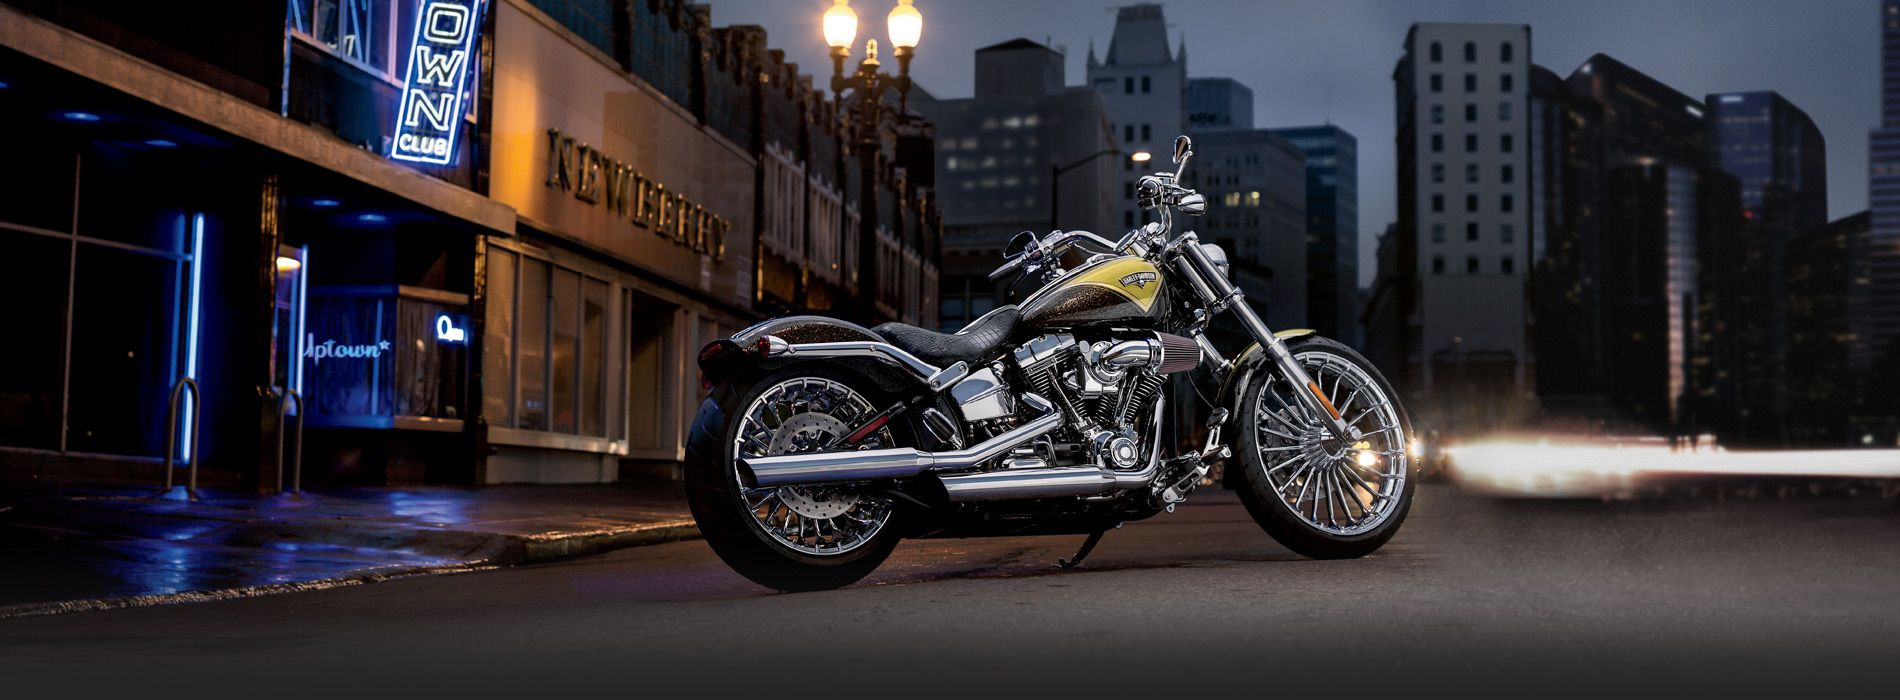 Working up to this one in a couple years harley davidson 2013 fxsbse cvo breakout motorcycle